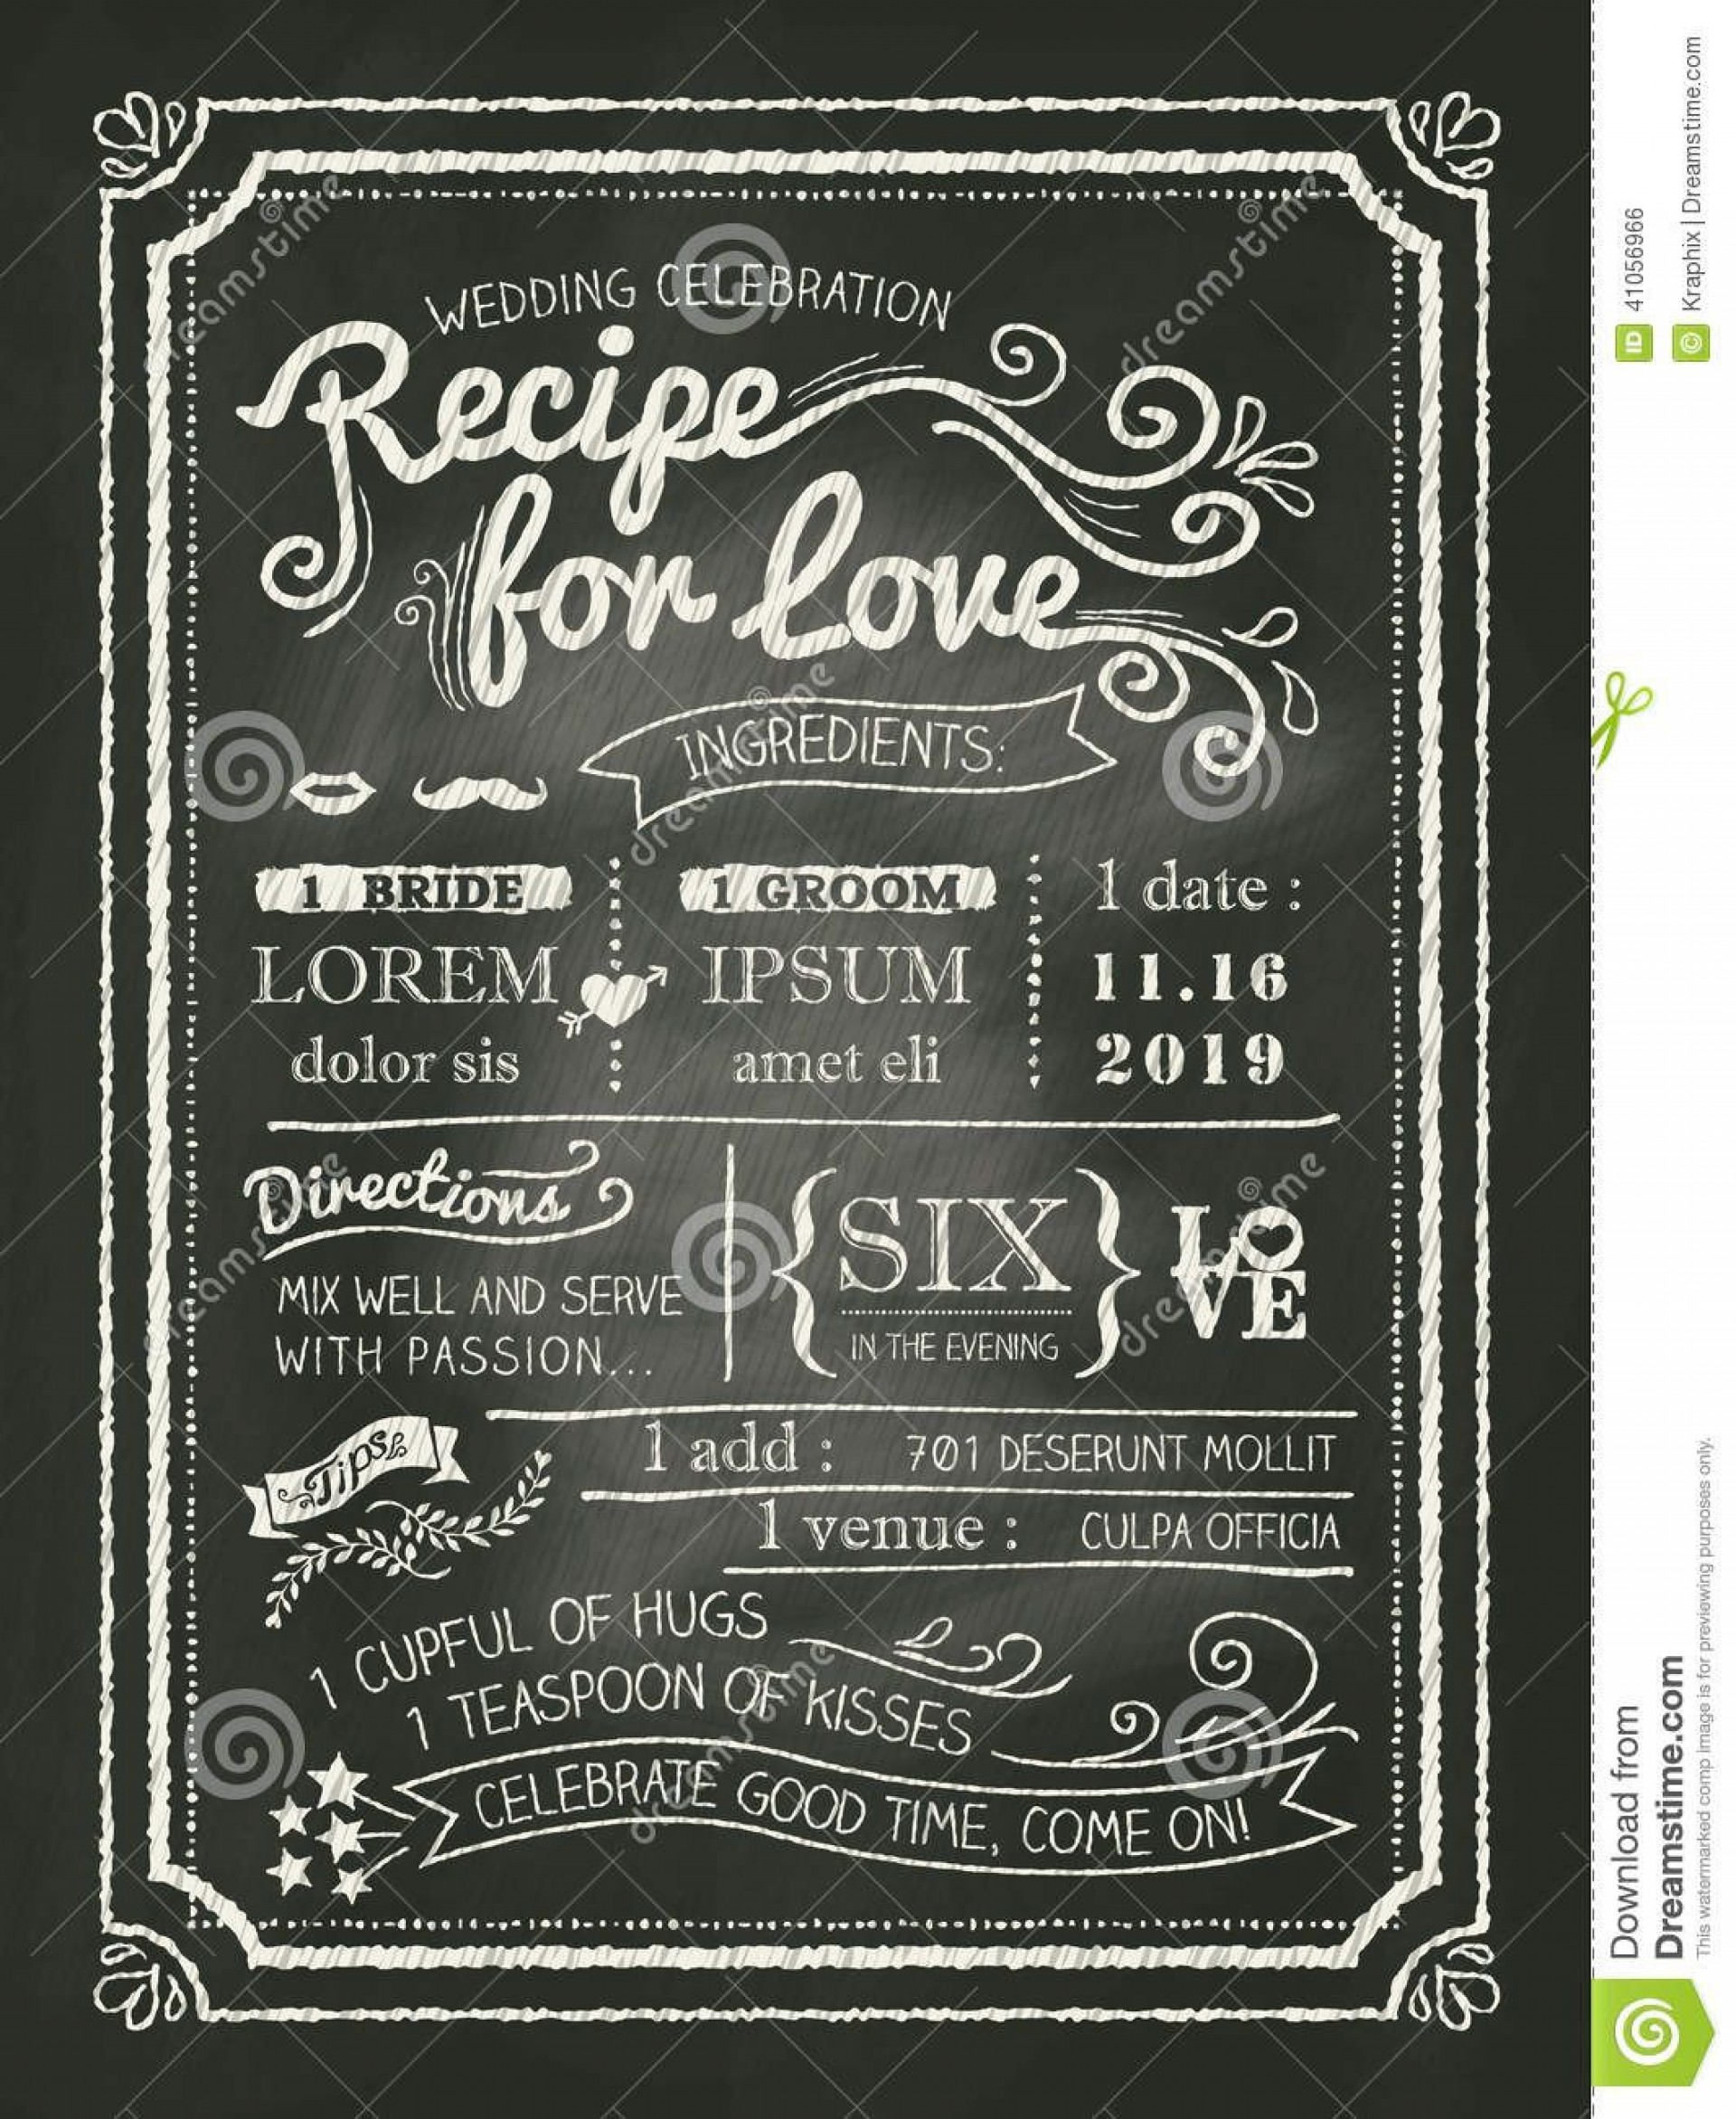 008 Amazing Chalkboard Invitation Template Free Design  Download Wedding1920